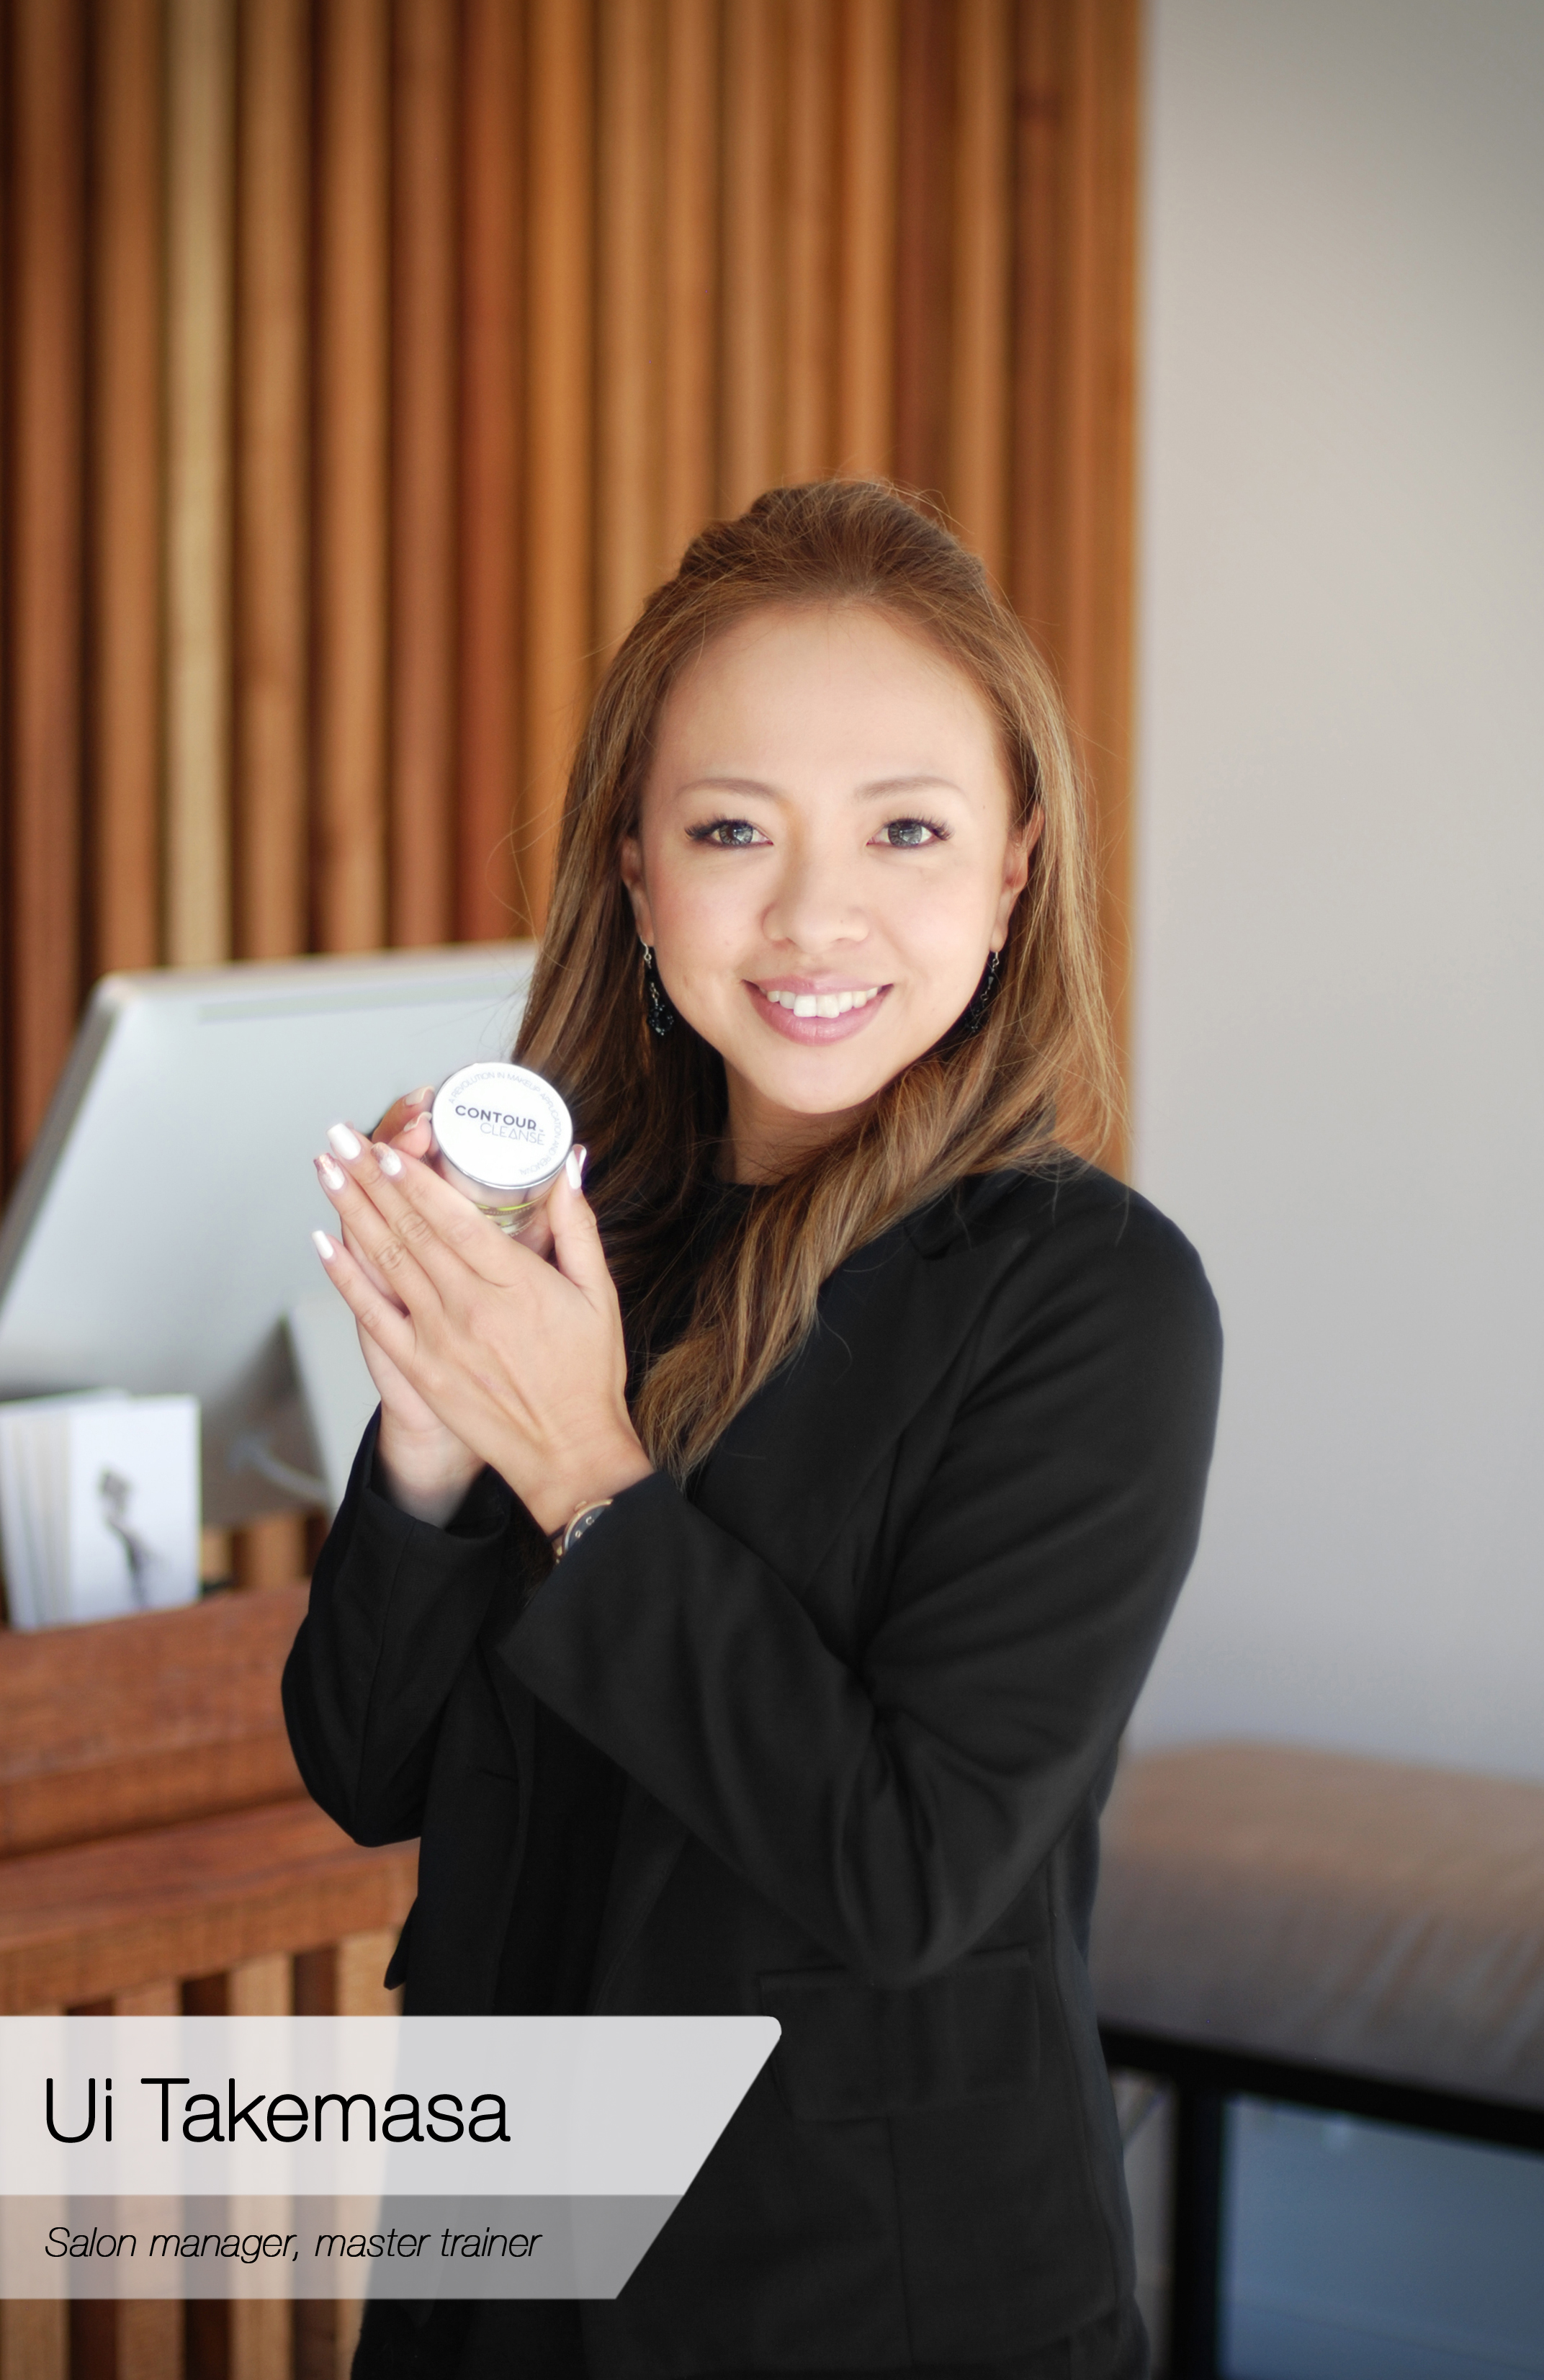 Salon Manager, Director: Ui Takemasa  Ui has more than 15 years experience in the health and beauty industry. She prides herself in providing premium services to clients at all levels and at all times. As Director of UP Lashes and Brows she is focussed on ensuring her clients' experience is second to none.